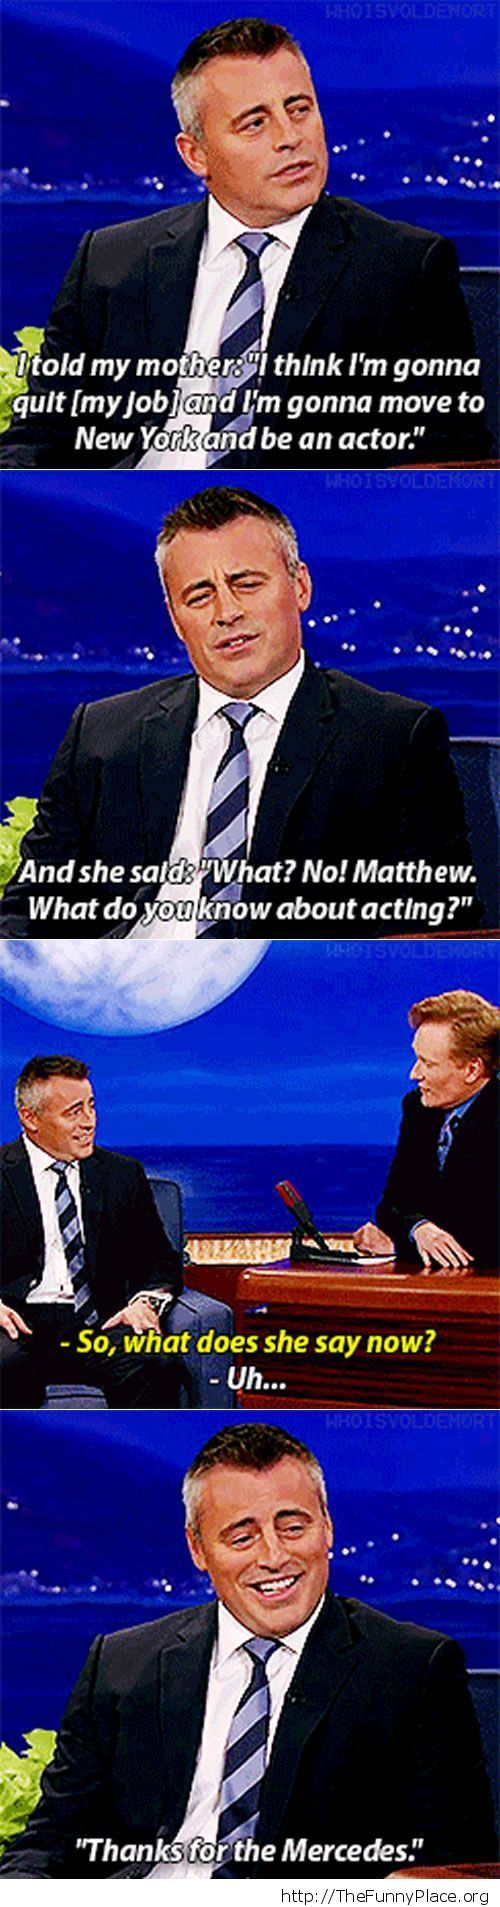 Matt LeBlanc about his mom